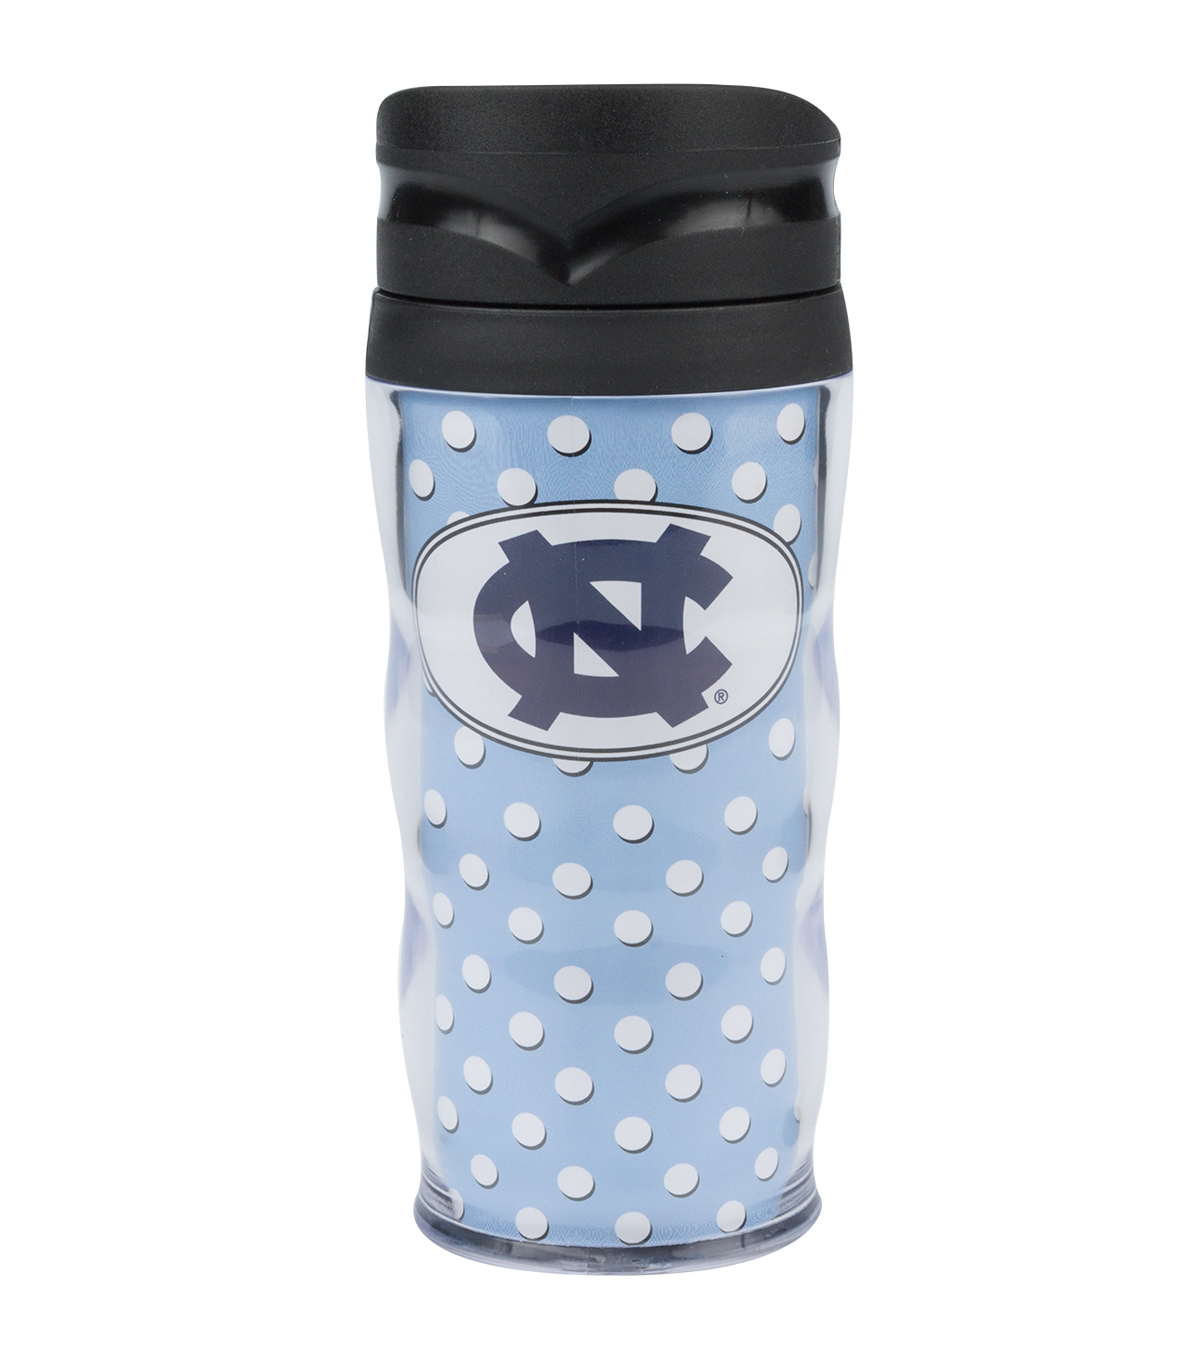 University of North Carolina Tarheels Polka Dot Travel Mug